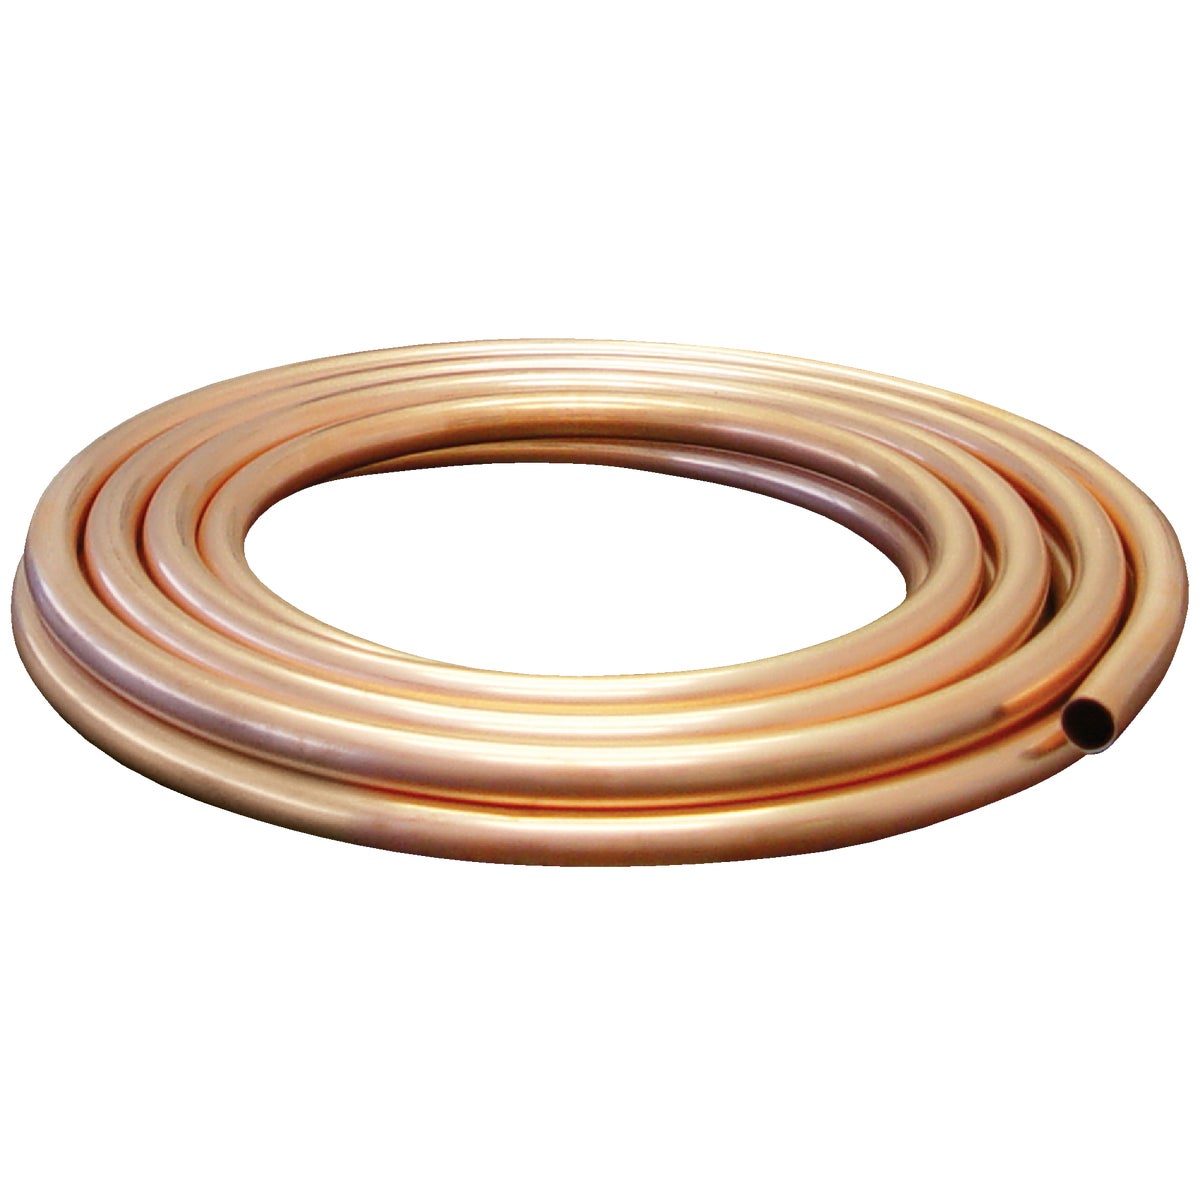 "1/4""ODX15'UG COPPER COIL - UT04015 by Mueller B K"